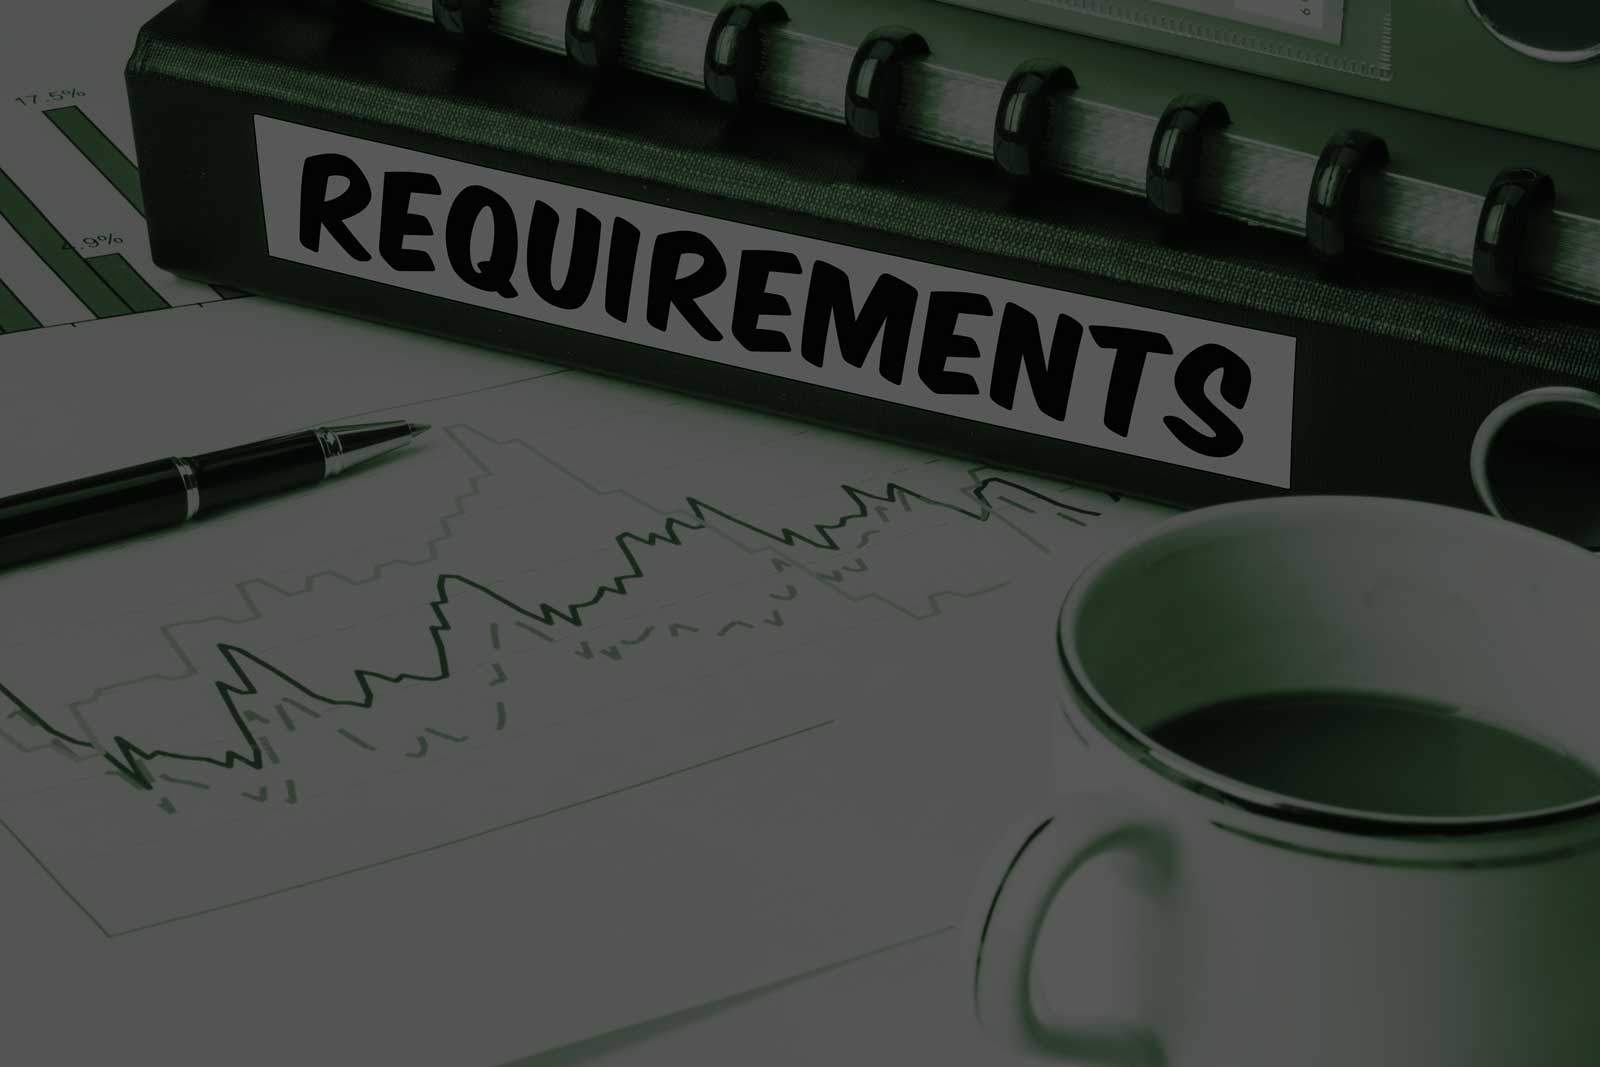 SPECIFYING REQUIREMENTS FOR OUTSOURCED PROJECTS